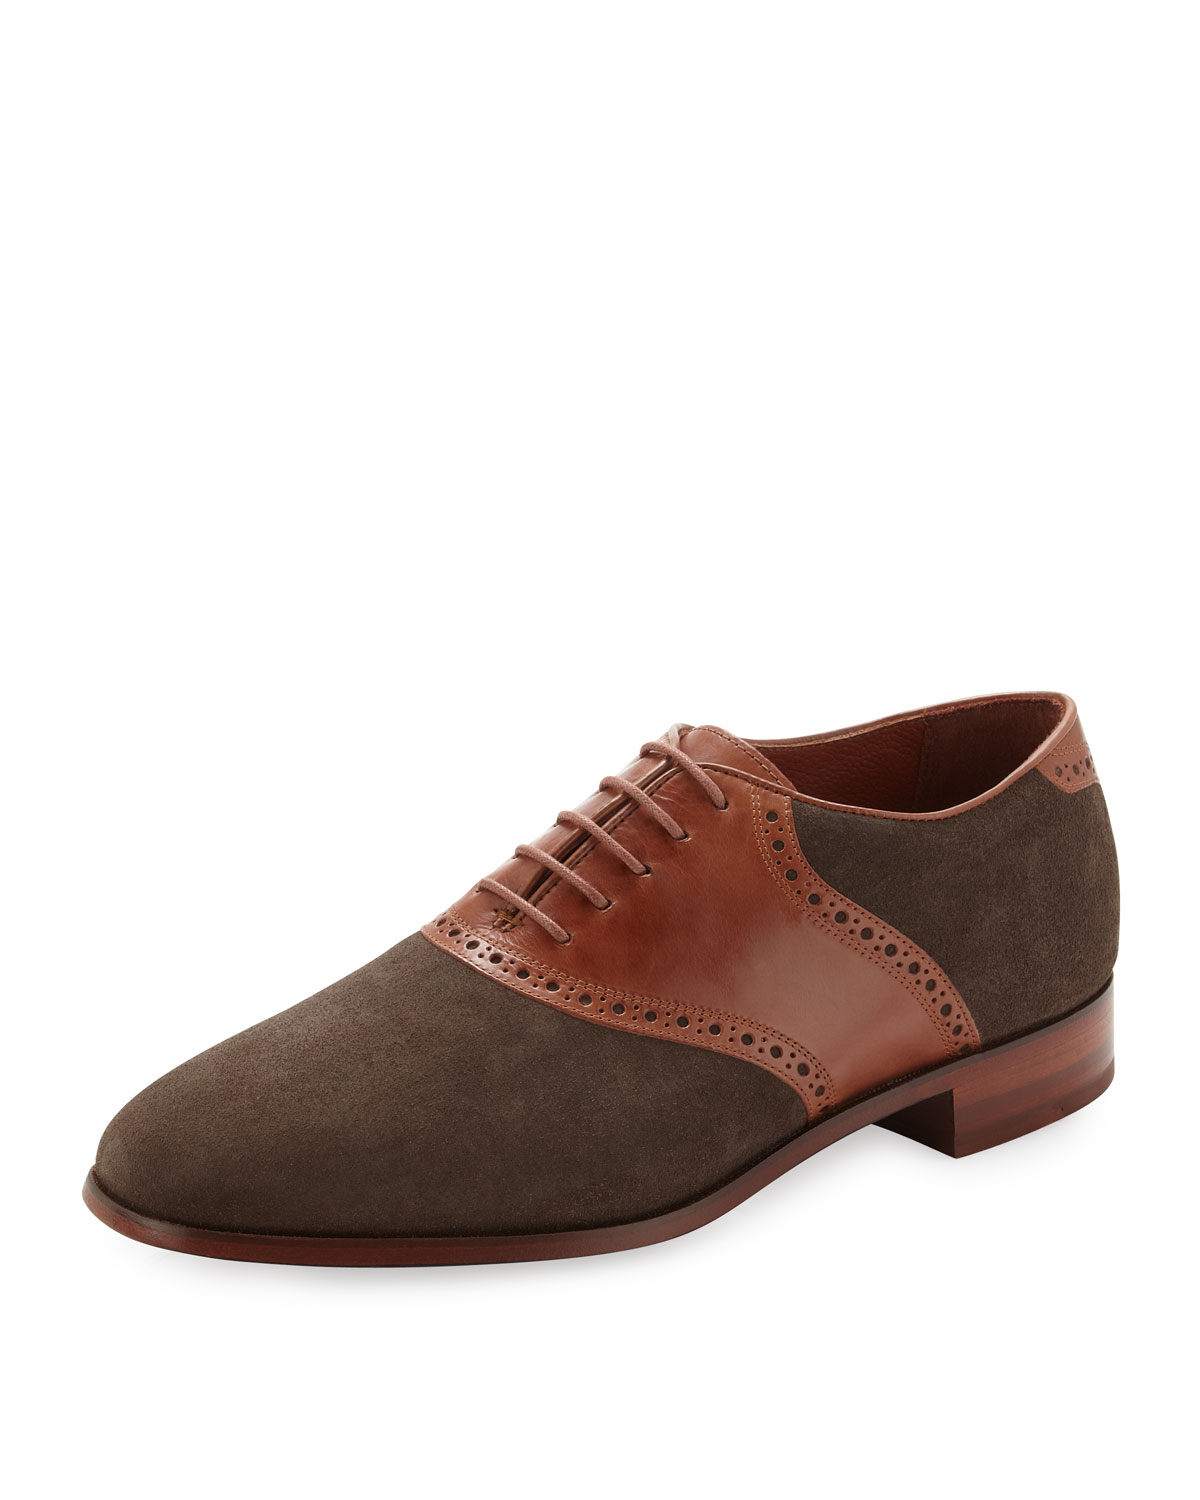 florsheim by duckie brown suedeleather saddle shoe in